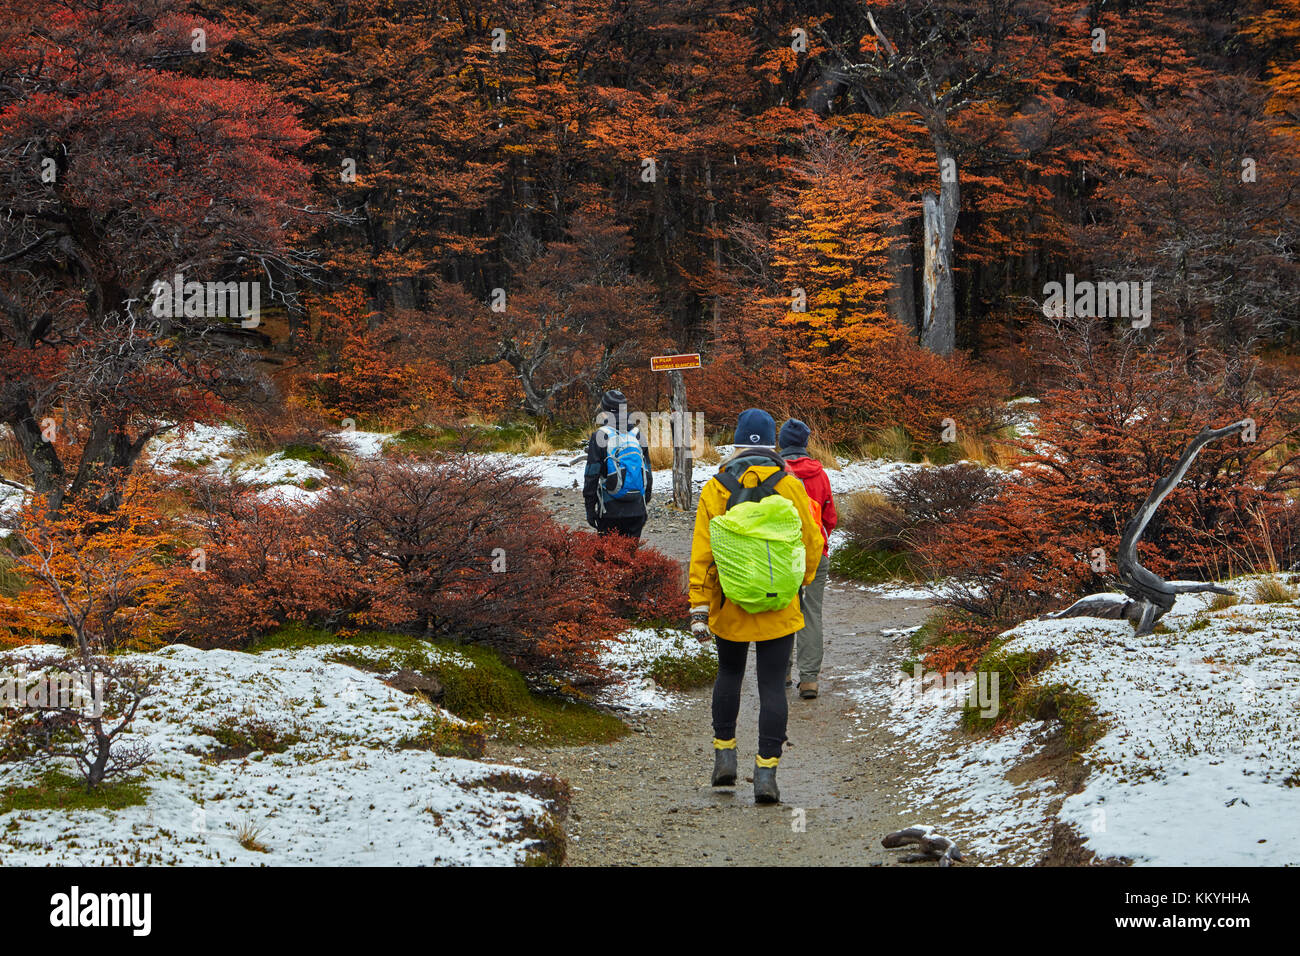 Hikers, snow, and lenga forest on track to Laguna de los Tres, Parque Nacional Los Glaciares (World Heritage Area), - Stock Image